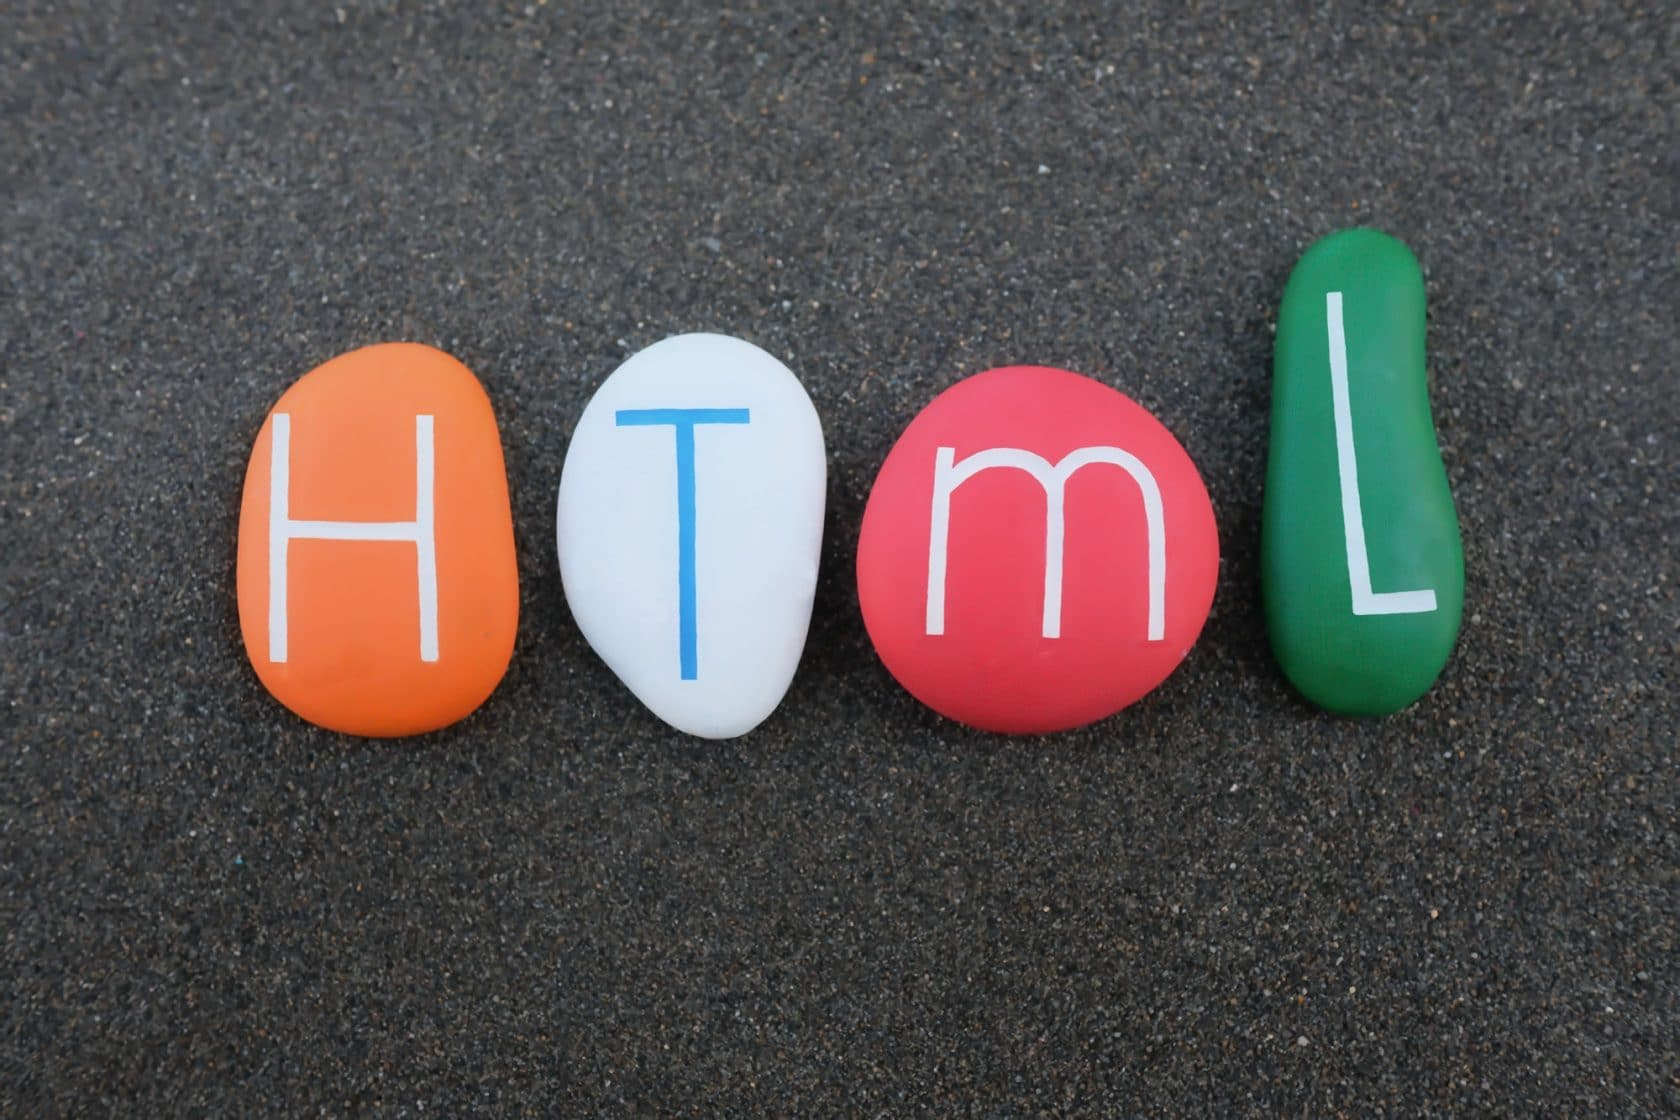 HTML, Hypertext Markup Language composed with colored stones over black volcanic sand